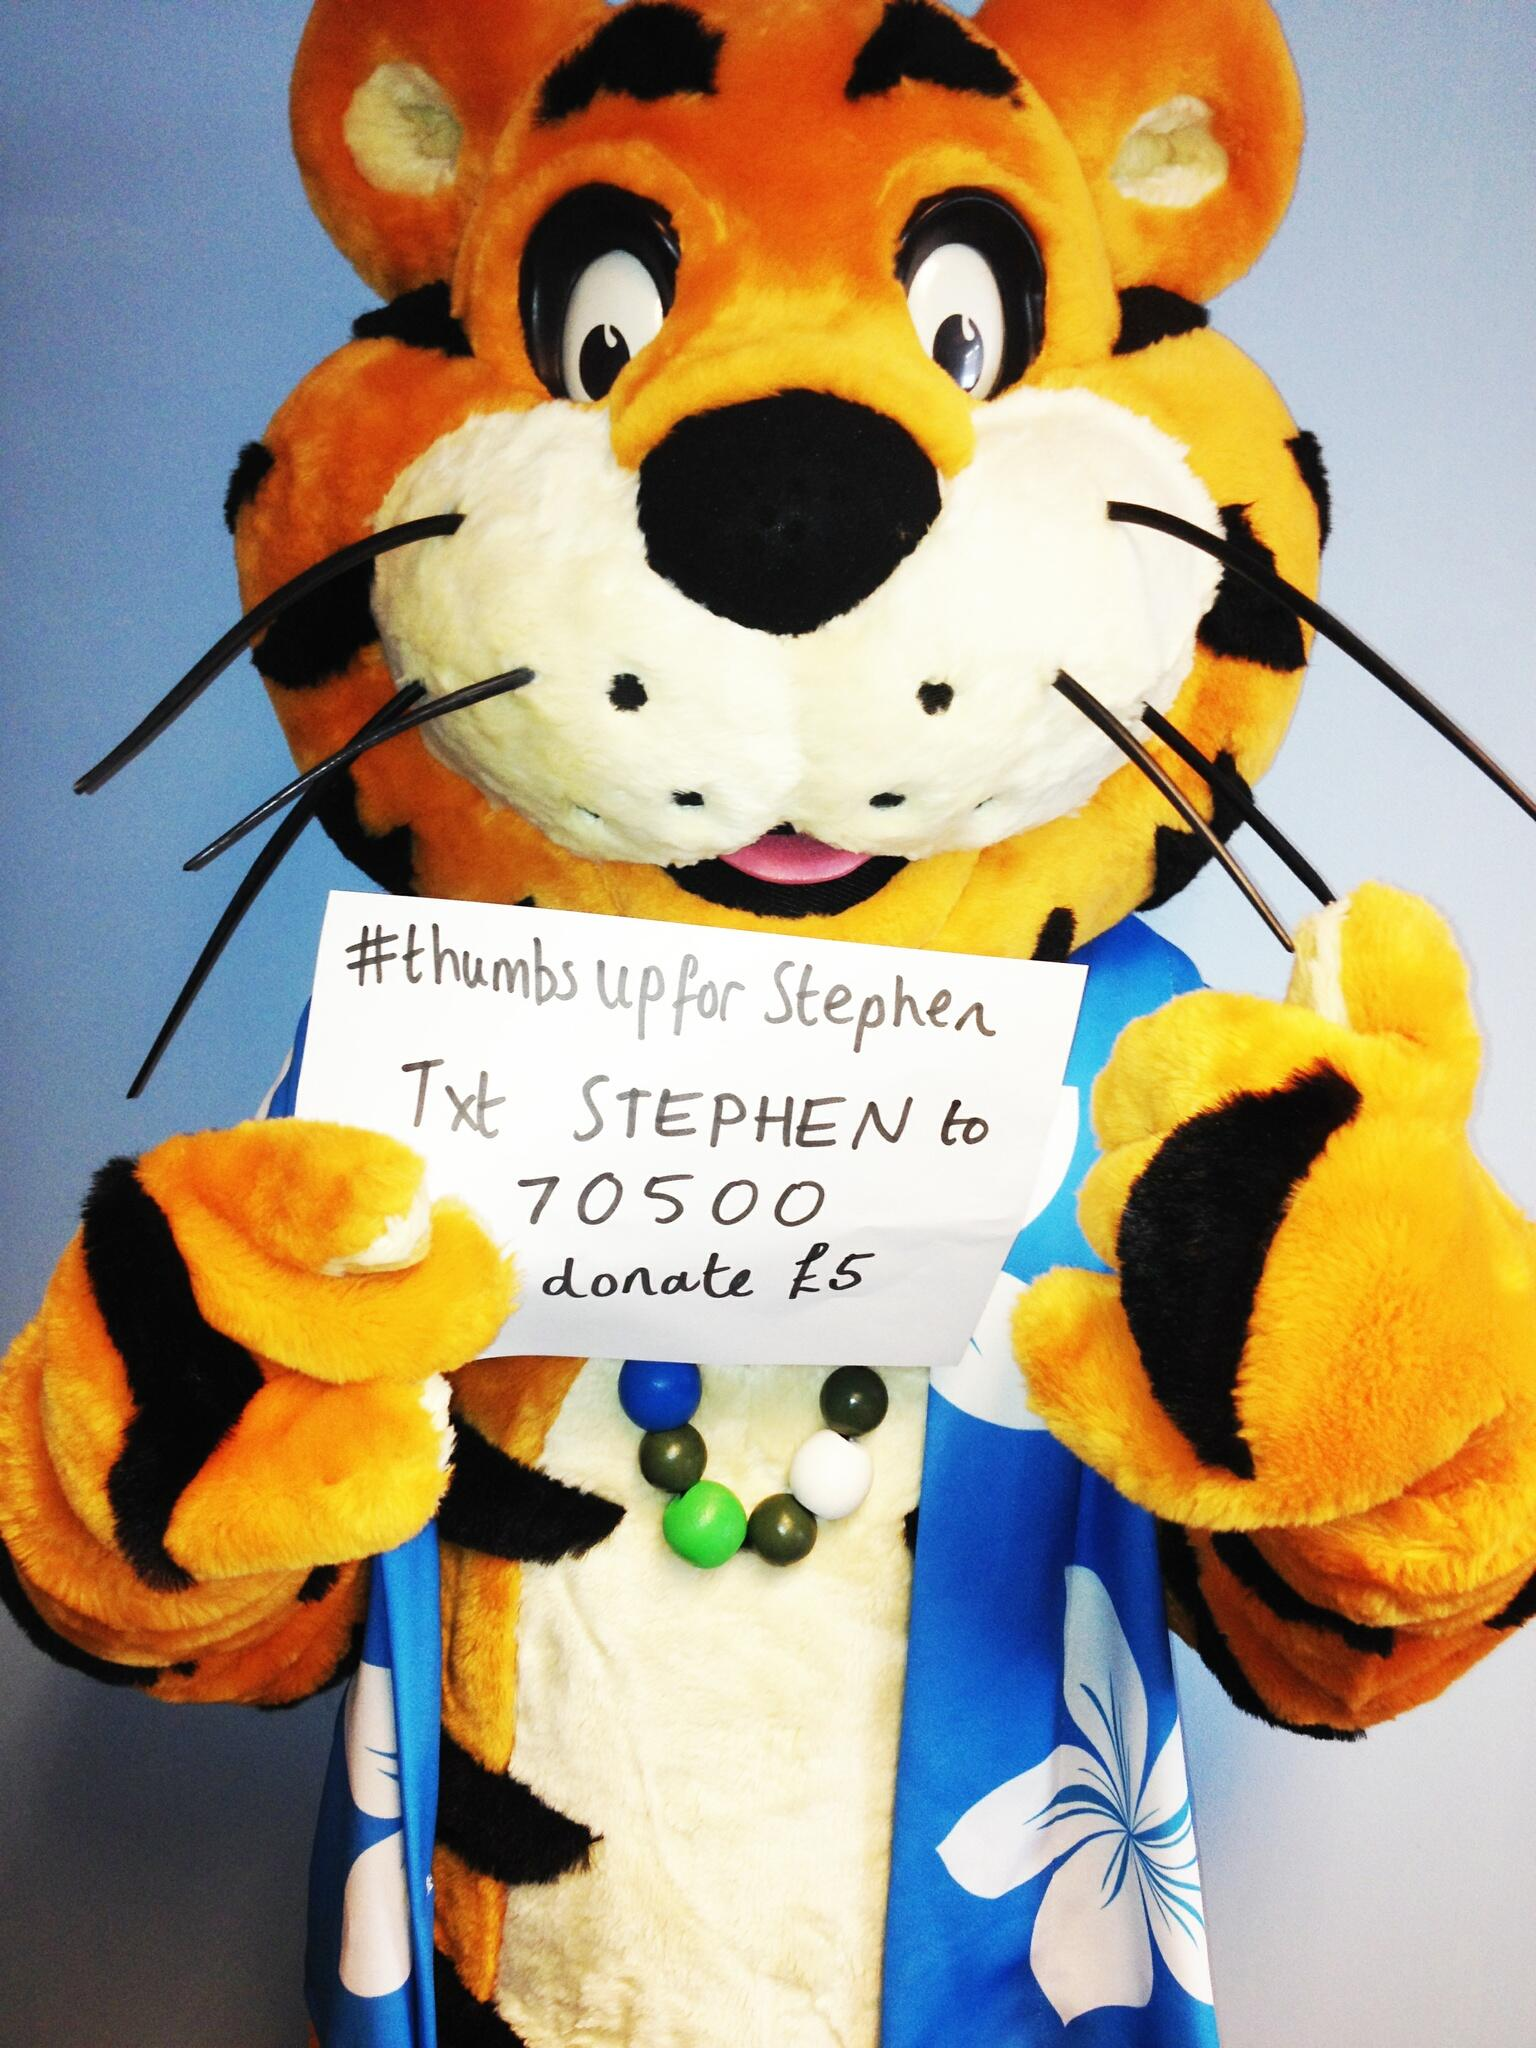 RT @haven: We've just donated to the amazing, brave and inspirational @_StephensStory #ThumbsUpForStephen http://t.co/XP9rDFQw8K